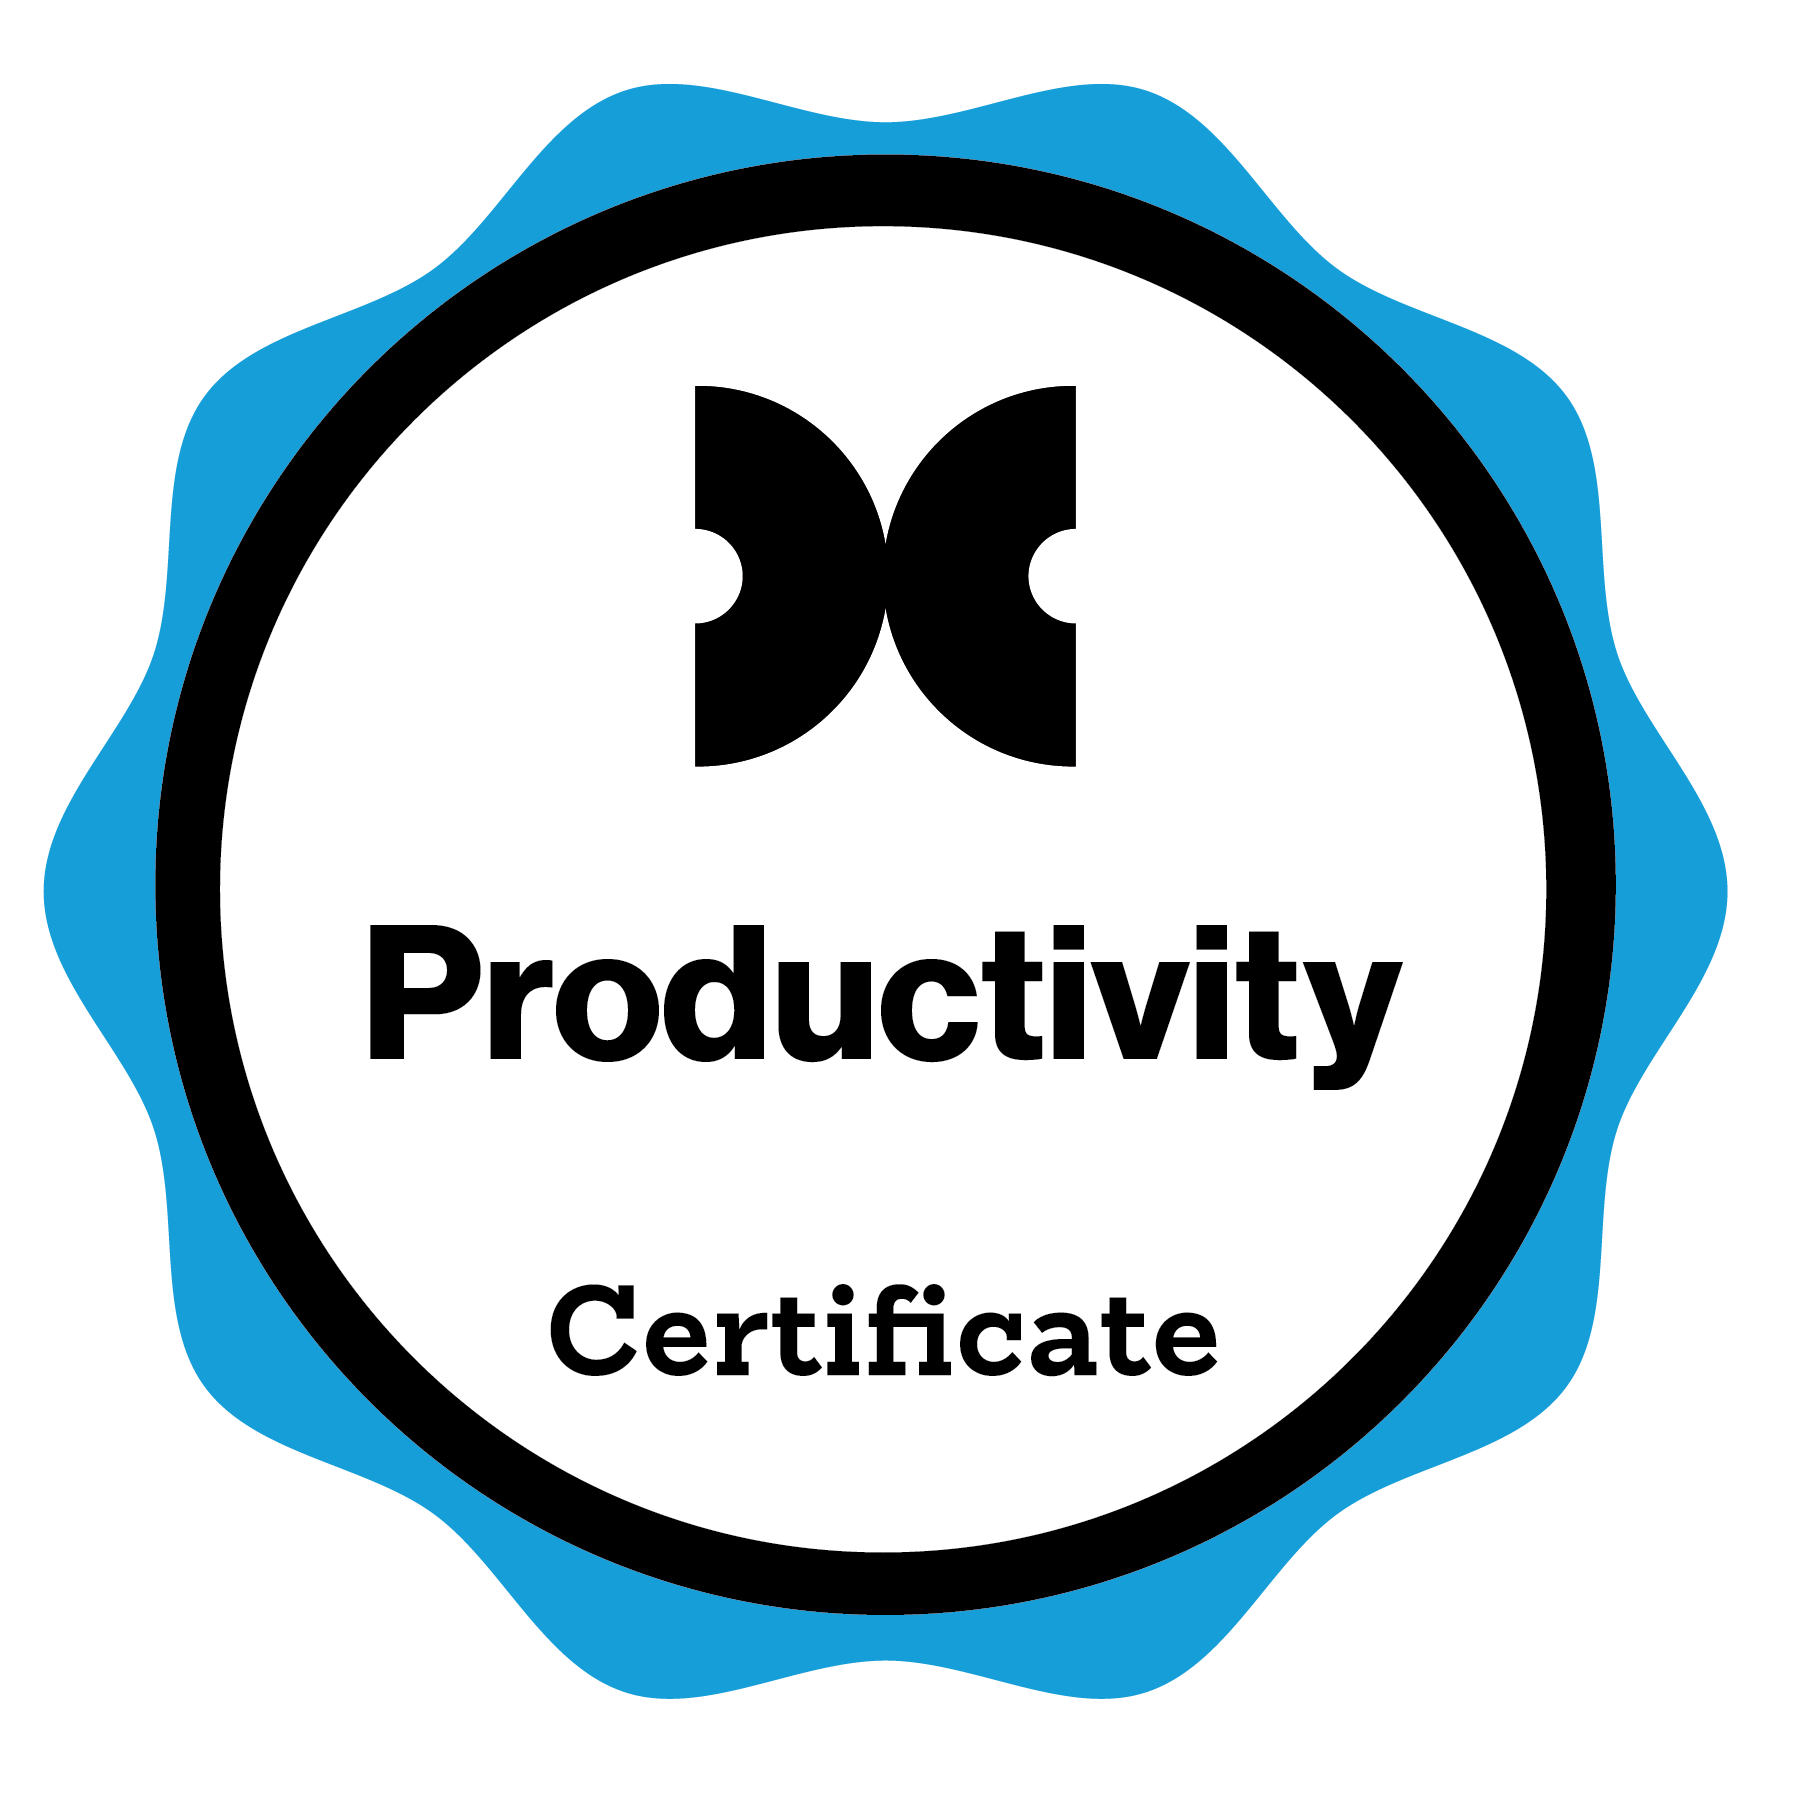 Productivity Certificate, Dale Carnegie of Singapore, Professional Training Courses